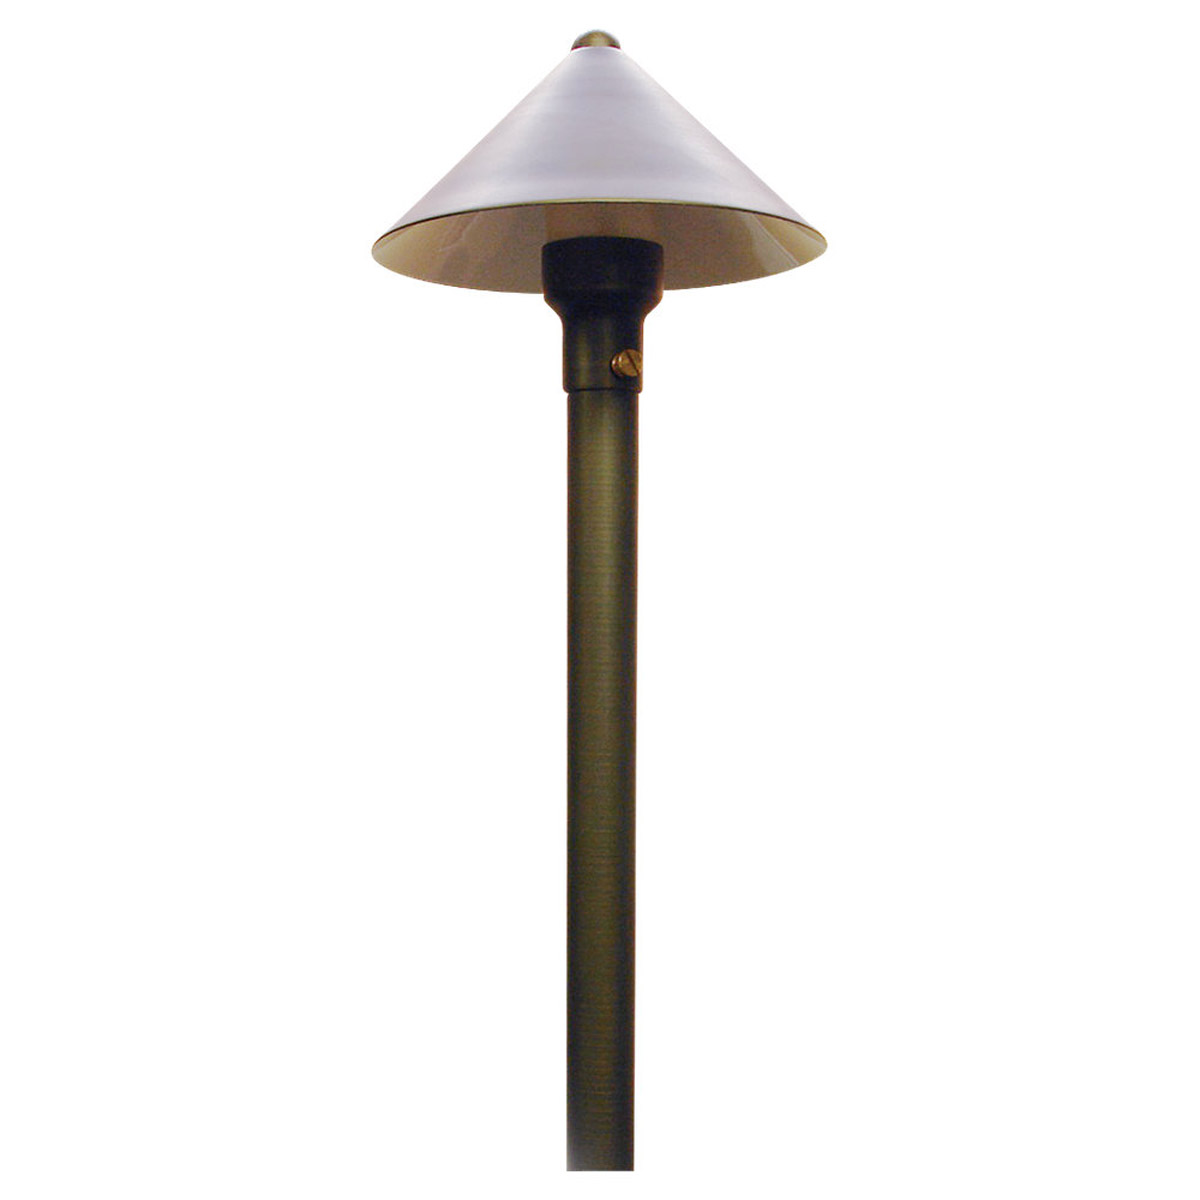 Sea Gull Lighting Imperial 1 Light Landscape Path Light in Weathered Brass 91175-147 photo